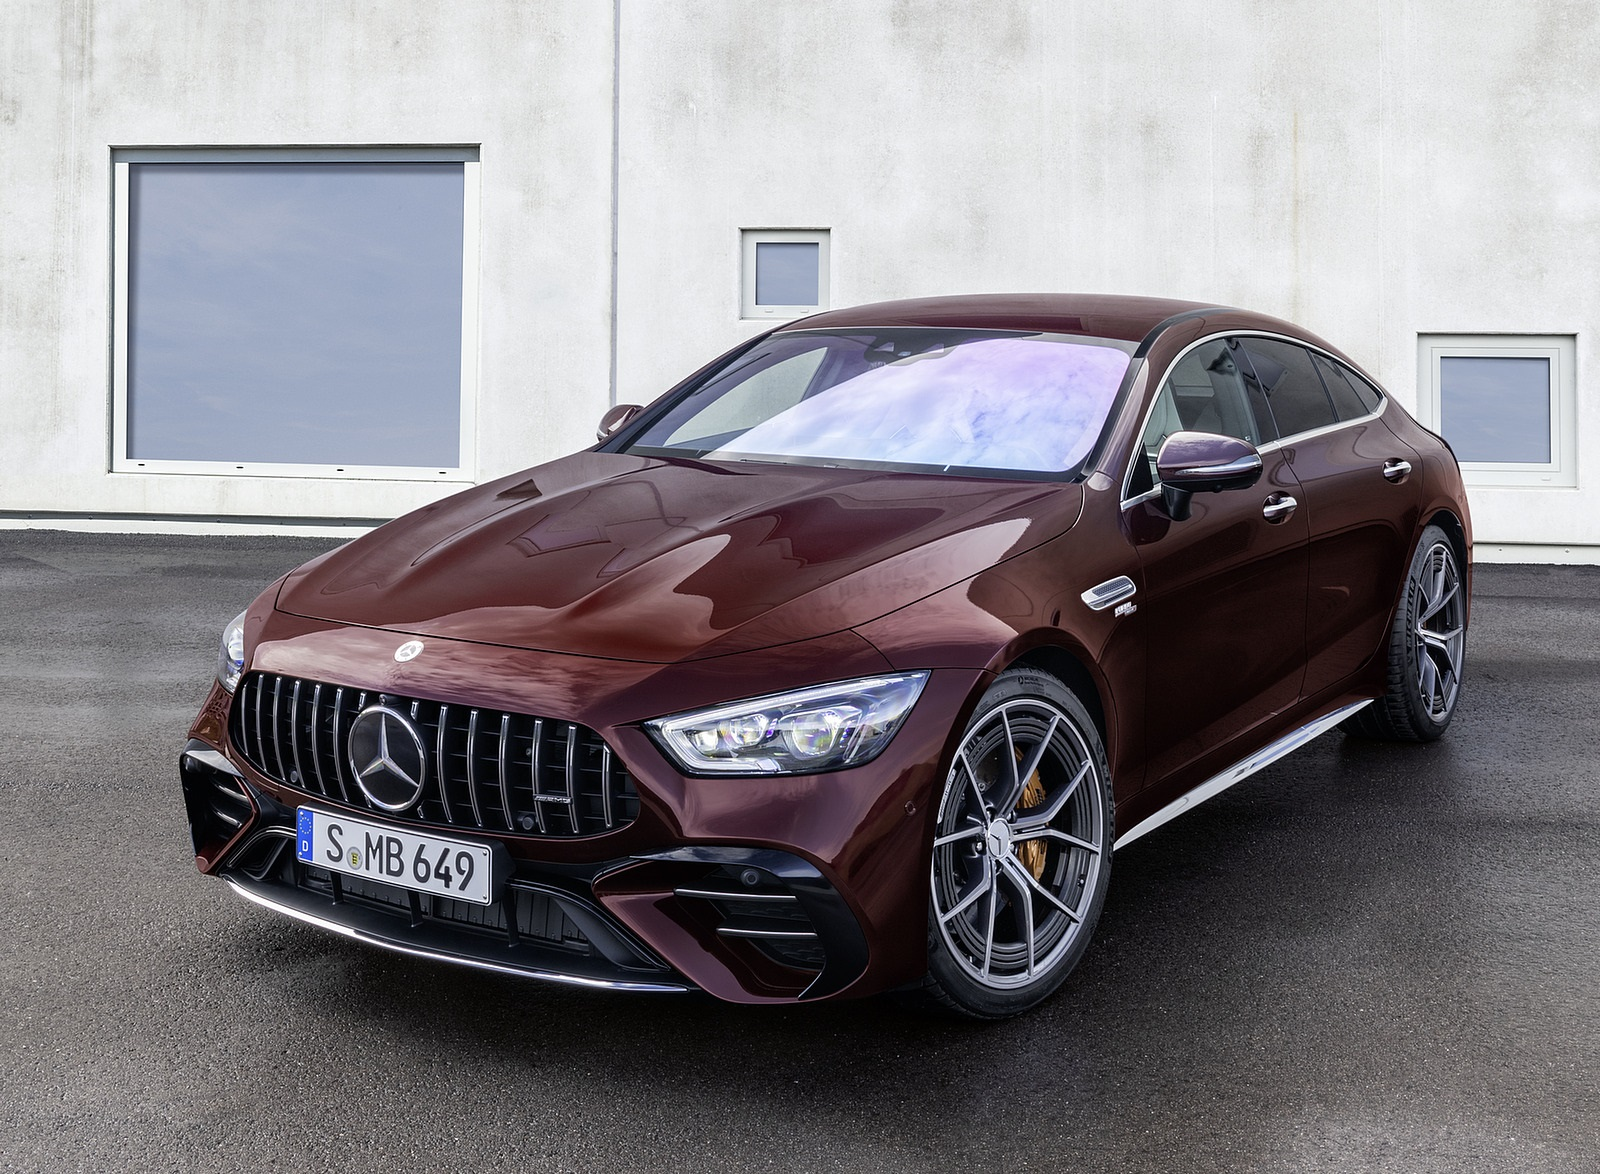 2022 Mercedes-AMG GT 53 4MATIC+ 4-Door Coupe (Color: Rubellite Red) Front Three-Quarter Wallpapers (5)